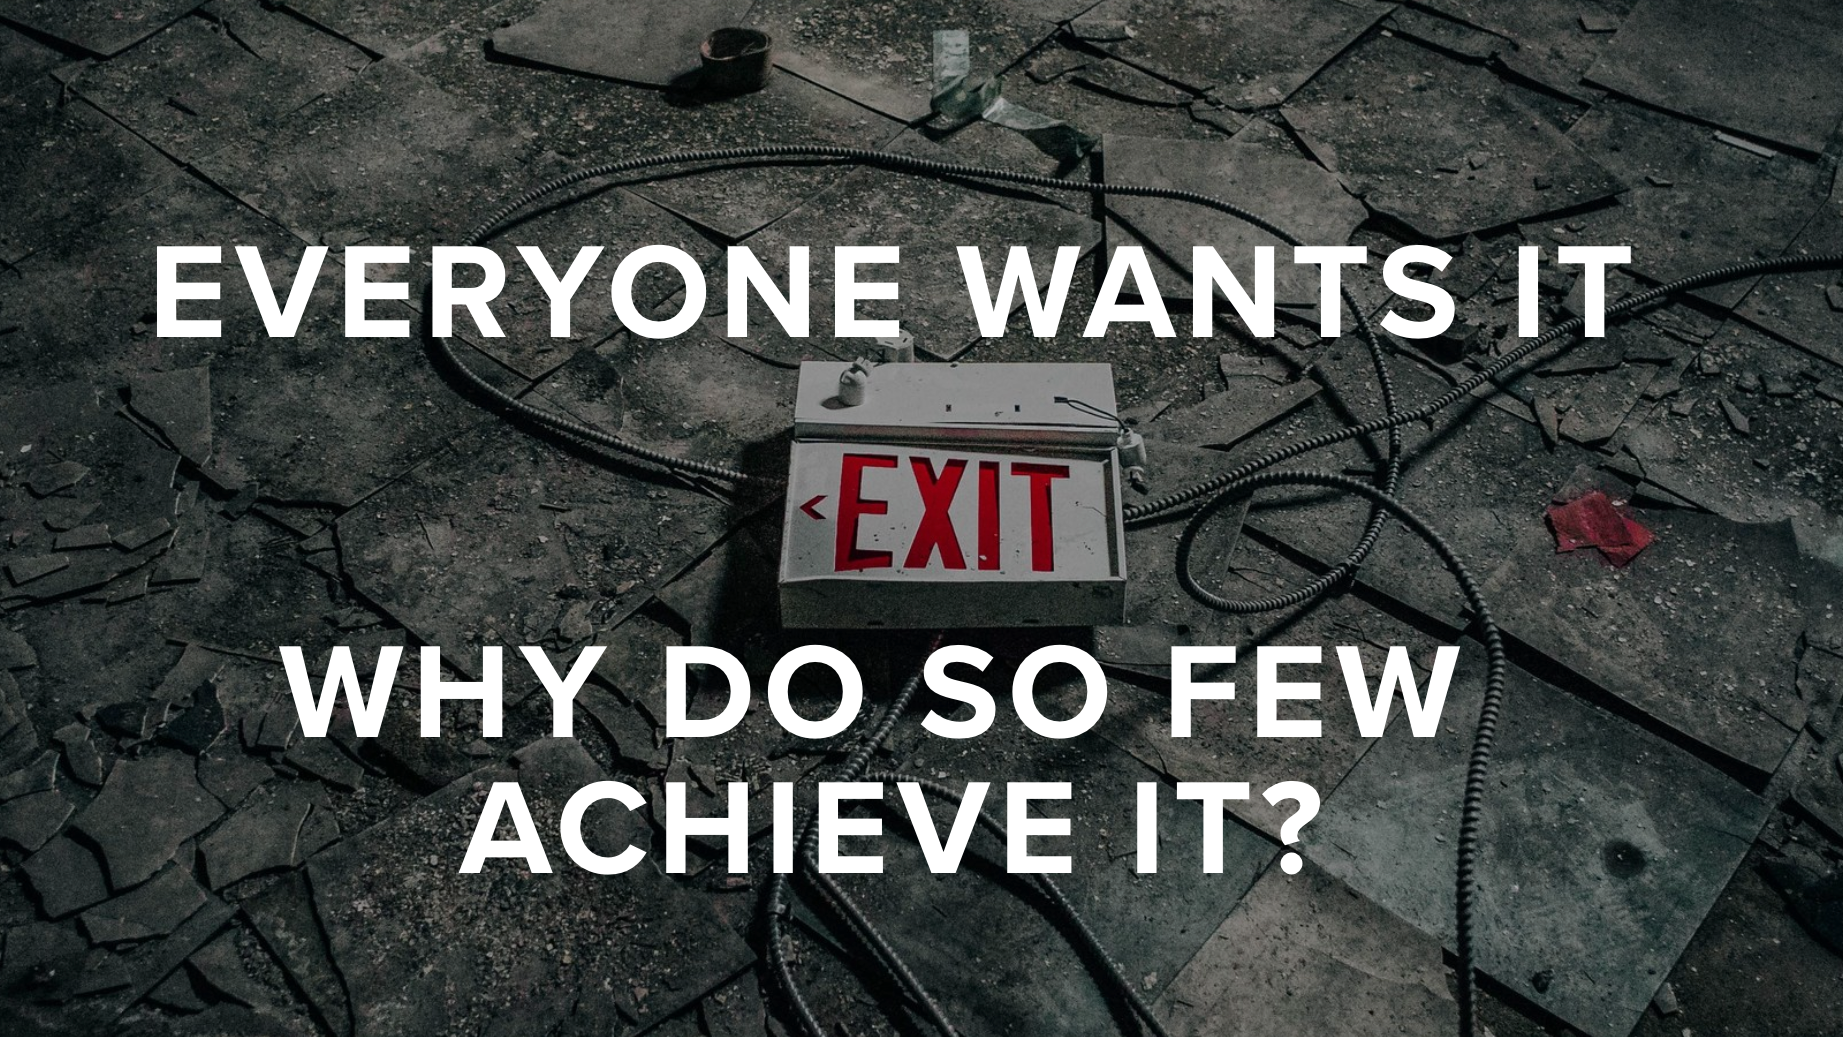 Less than 2% of startups succeed, according to Andreessen-Horowitz. Why is an exit so elusive?